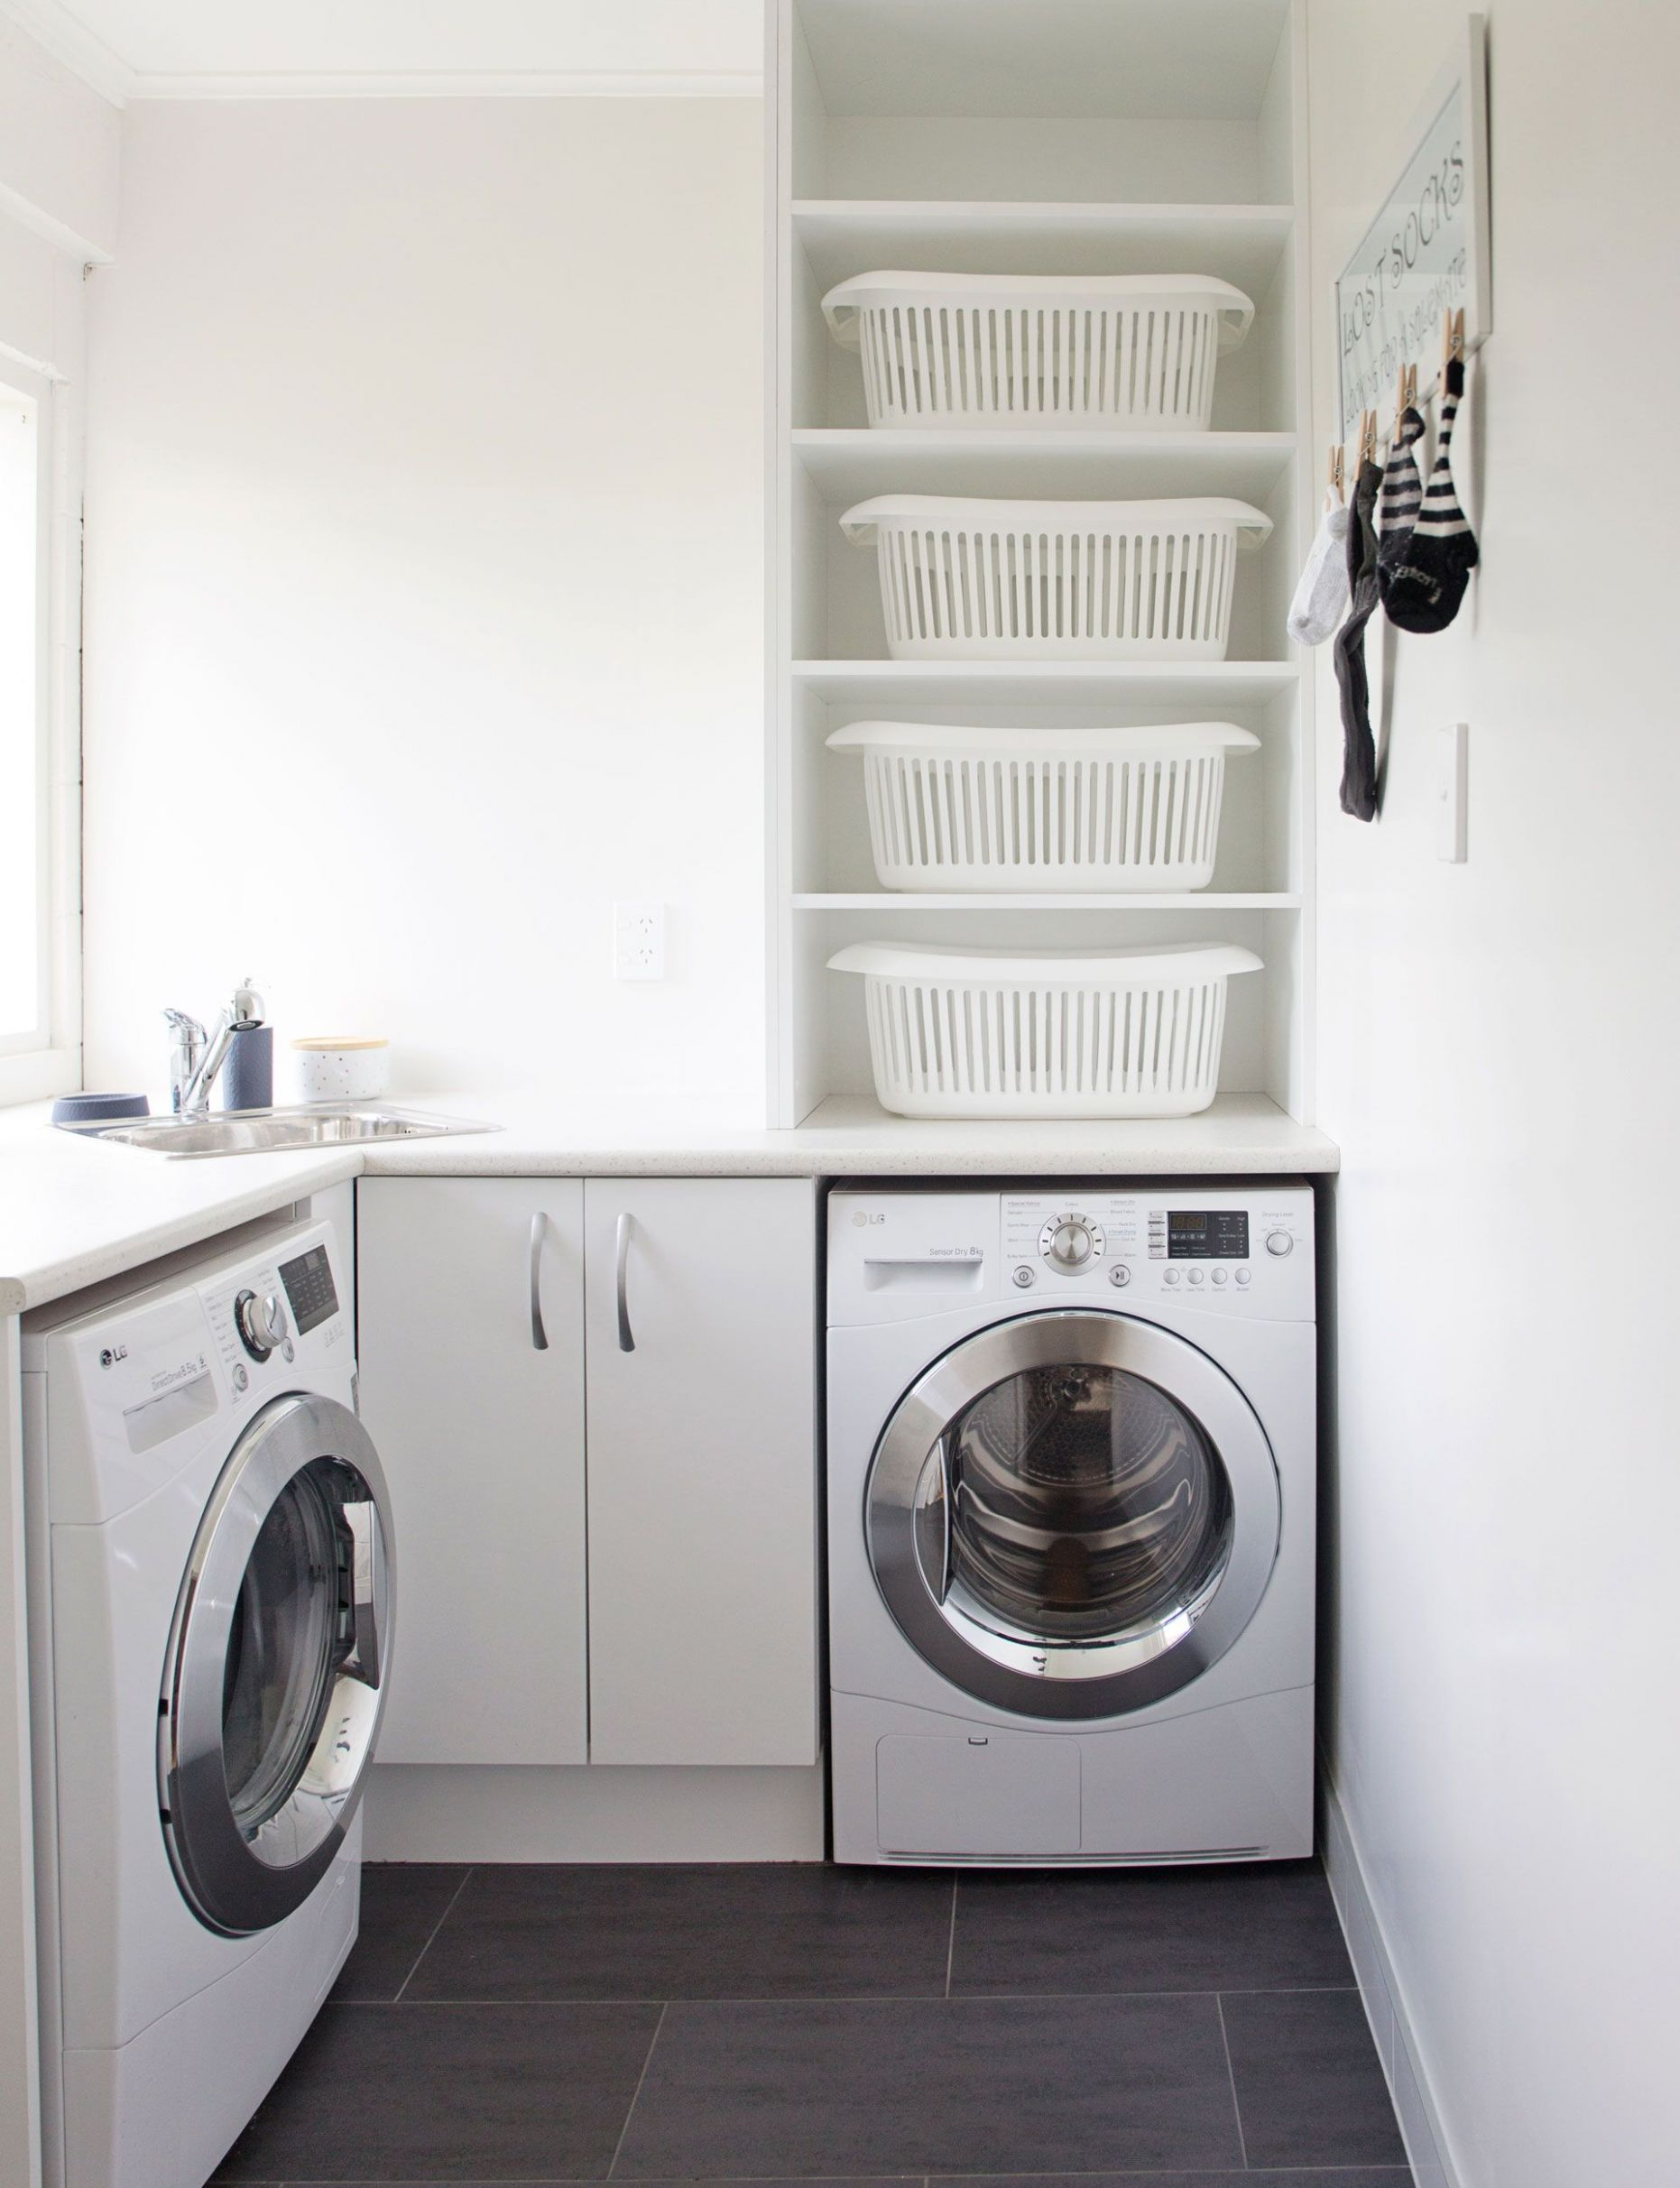 This bright laundry room has loads of functional style | Laundry ..